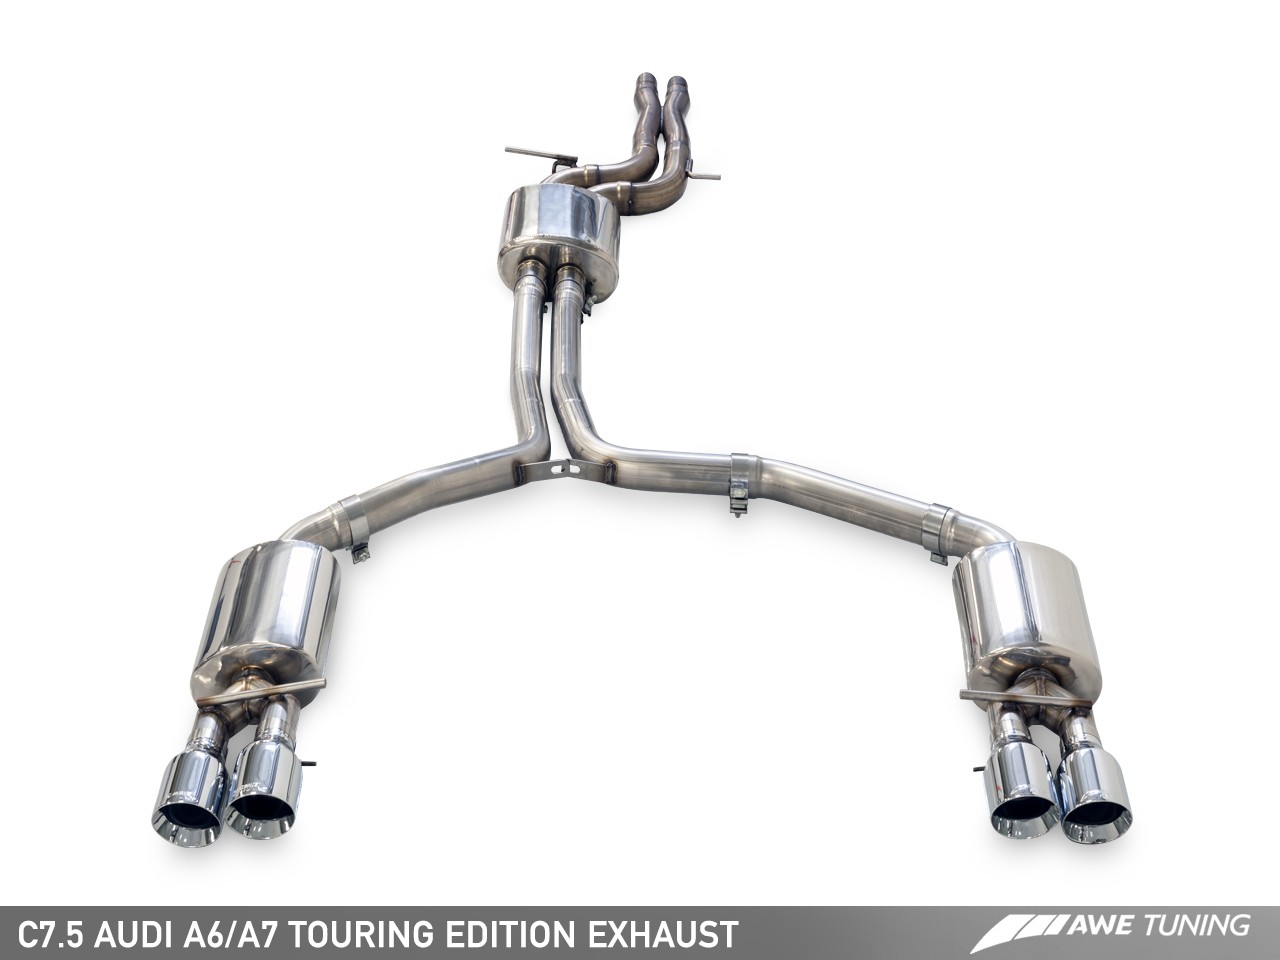 AWE Tuning 2016+ C7 5 Audi A6/A7 Exhaust Suite  Now Available